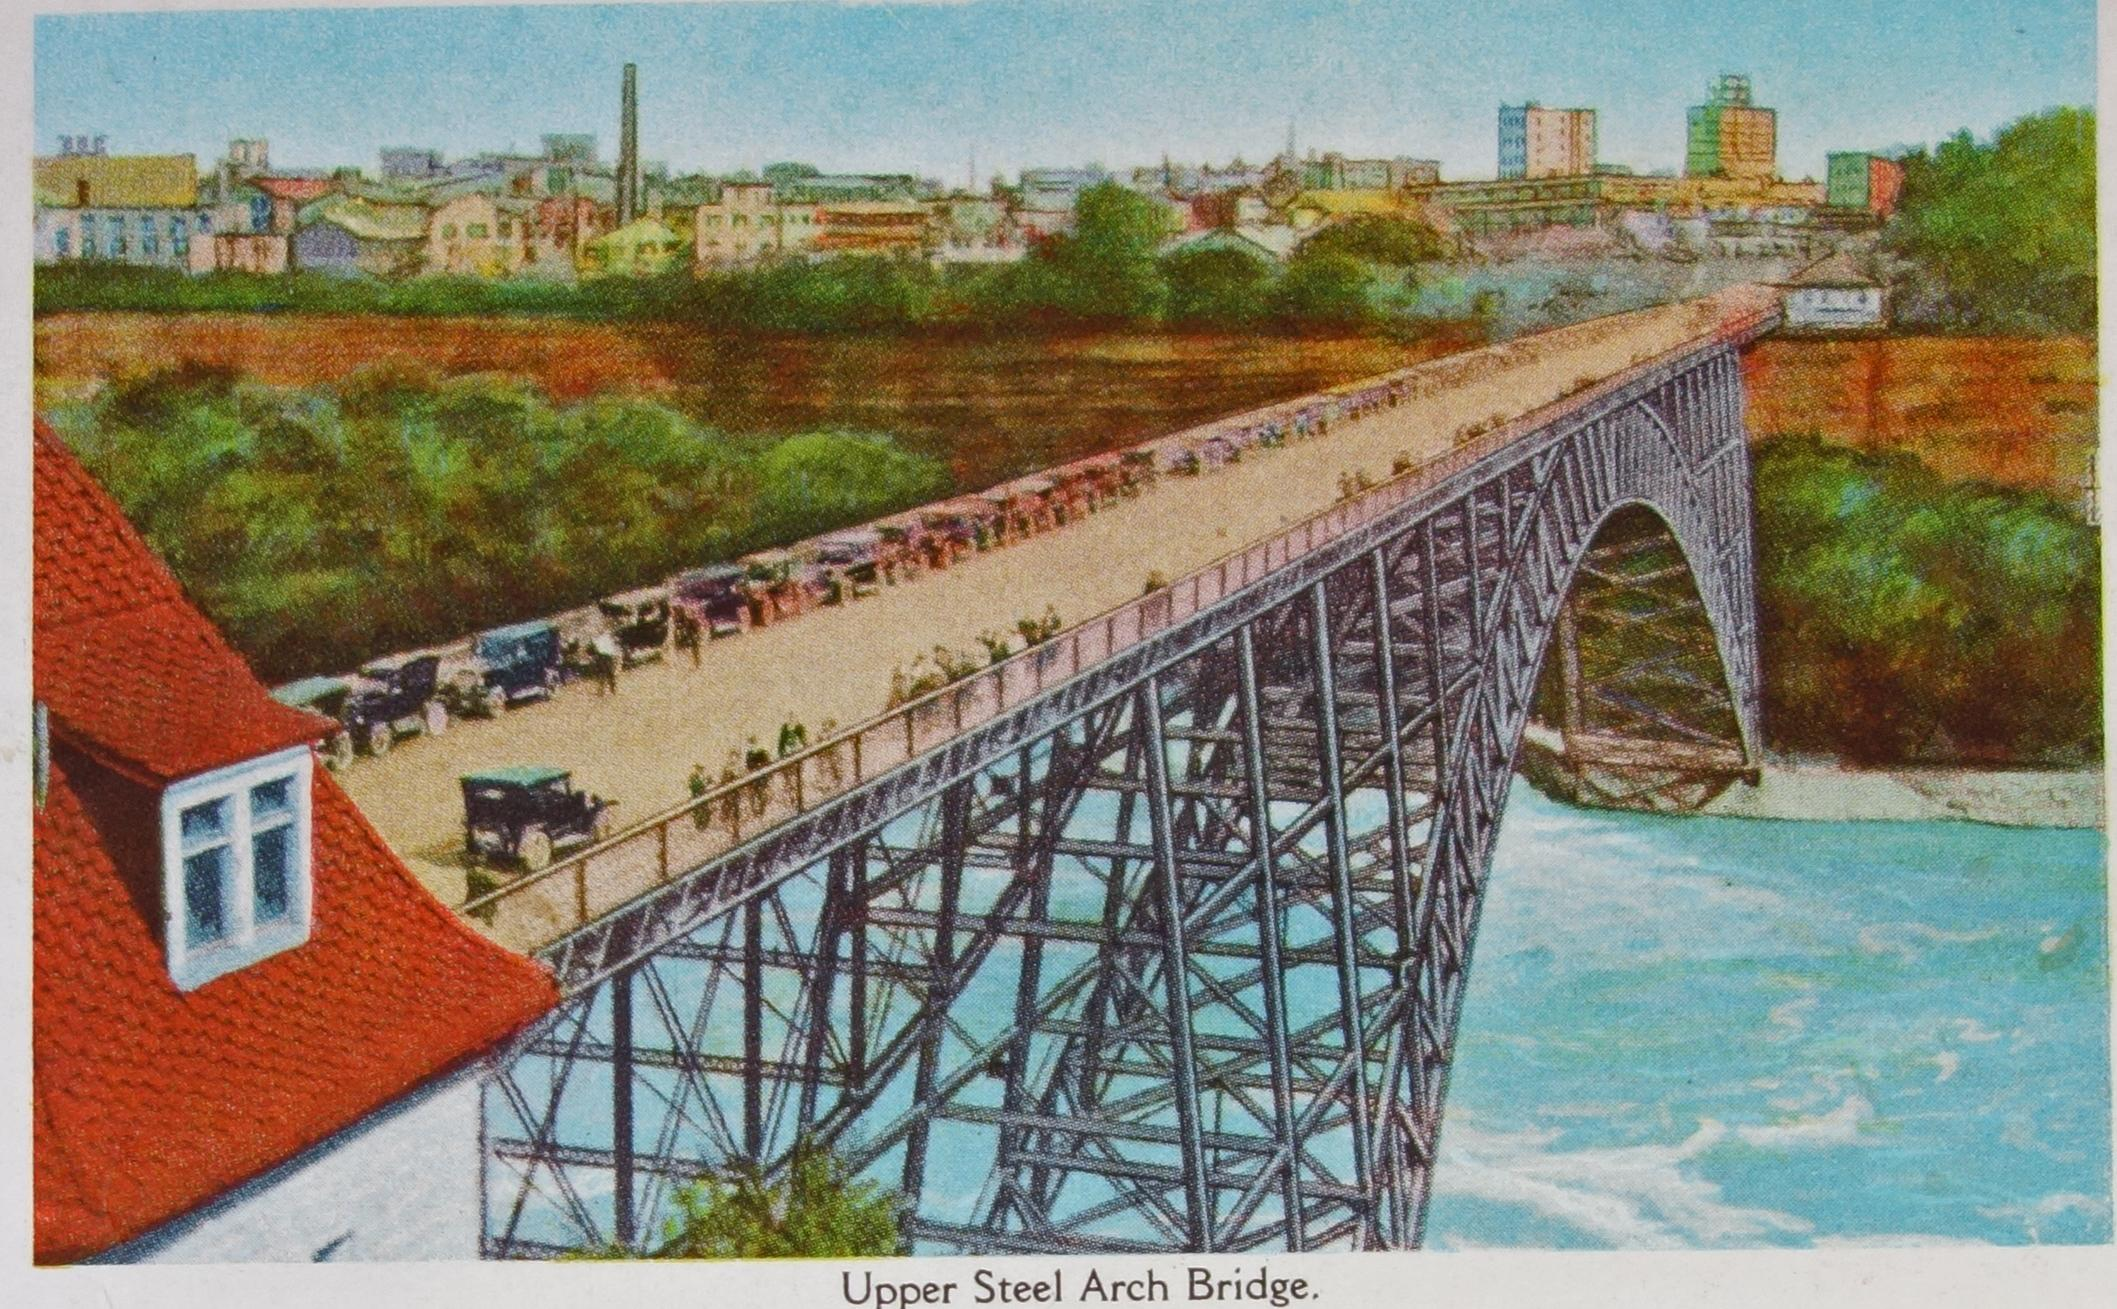 The Upper Steel Arch Bridge or the Honeymoon Bridge. Colourised photograph of the Honeymoon Bridge from the Canadian side. The 1929 Art Deco, Niagara United Office Building appears in the background in Niagara Falls New York State. Many cars are lined along the wooden topped bridge and on the near side (the south side) to have a view of the Niagara Falls. The feet of the arch bridge are barely above the water line. A red-shingle-roof building is in the extreme fore-ground and to the left of the creator. The trestling of the steel is noticeable, as is the swooping braces at the beginning before the main arch of the structure.